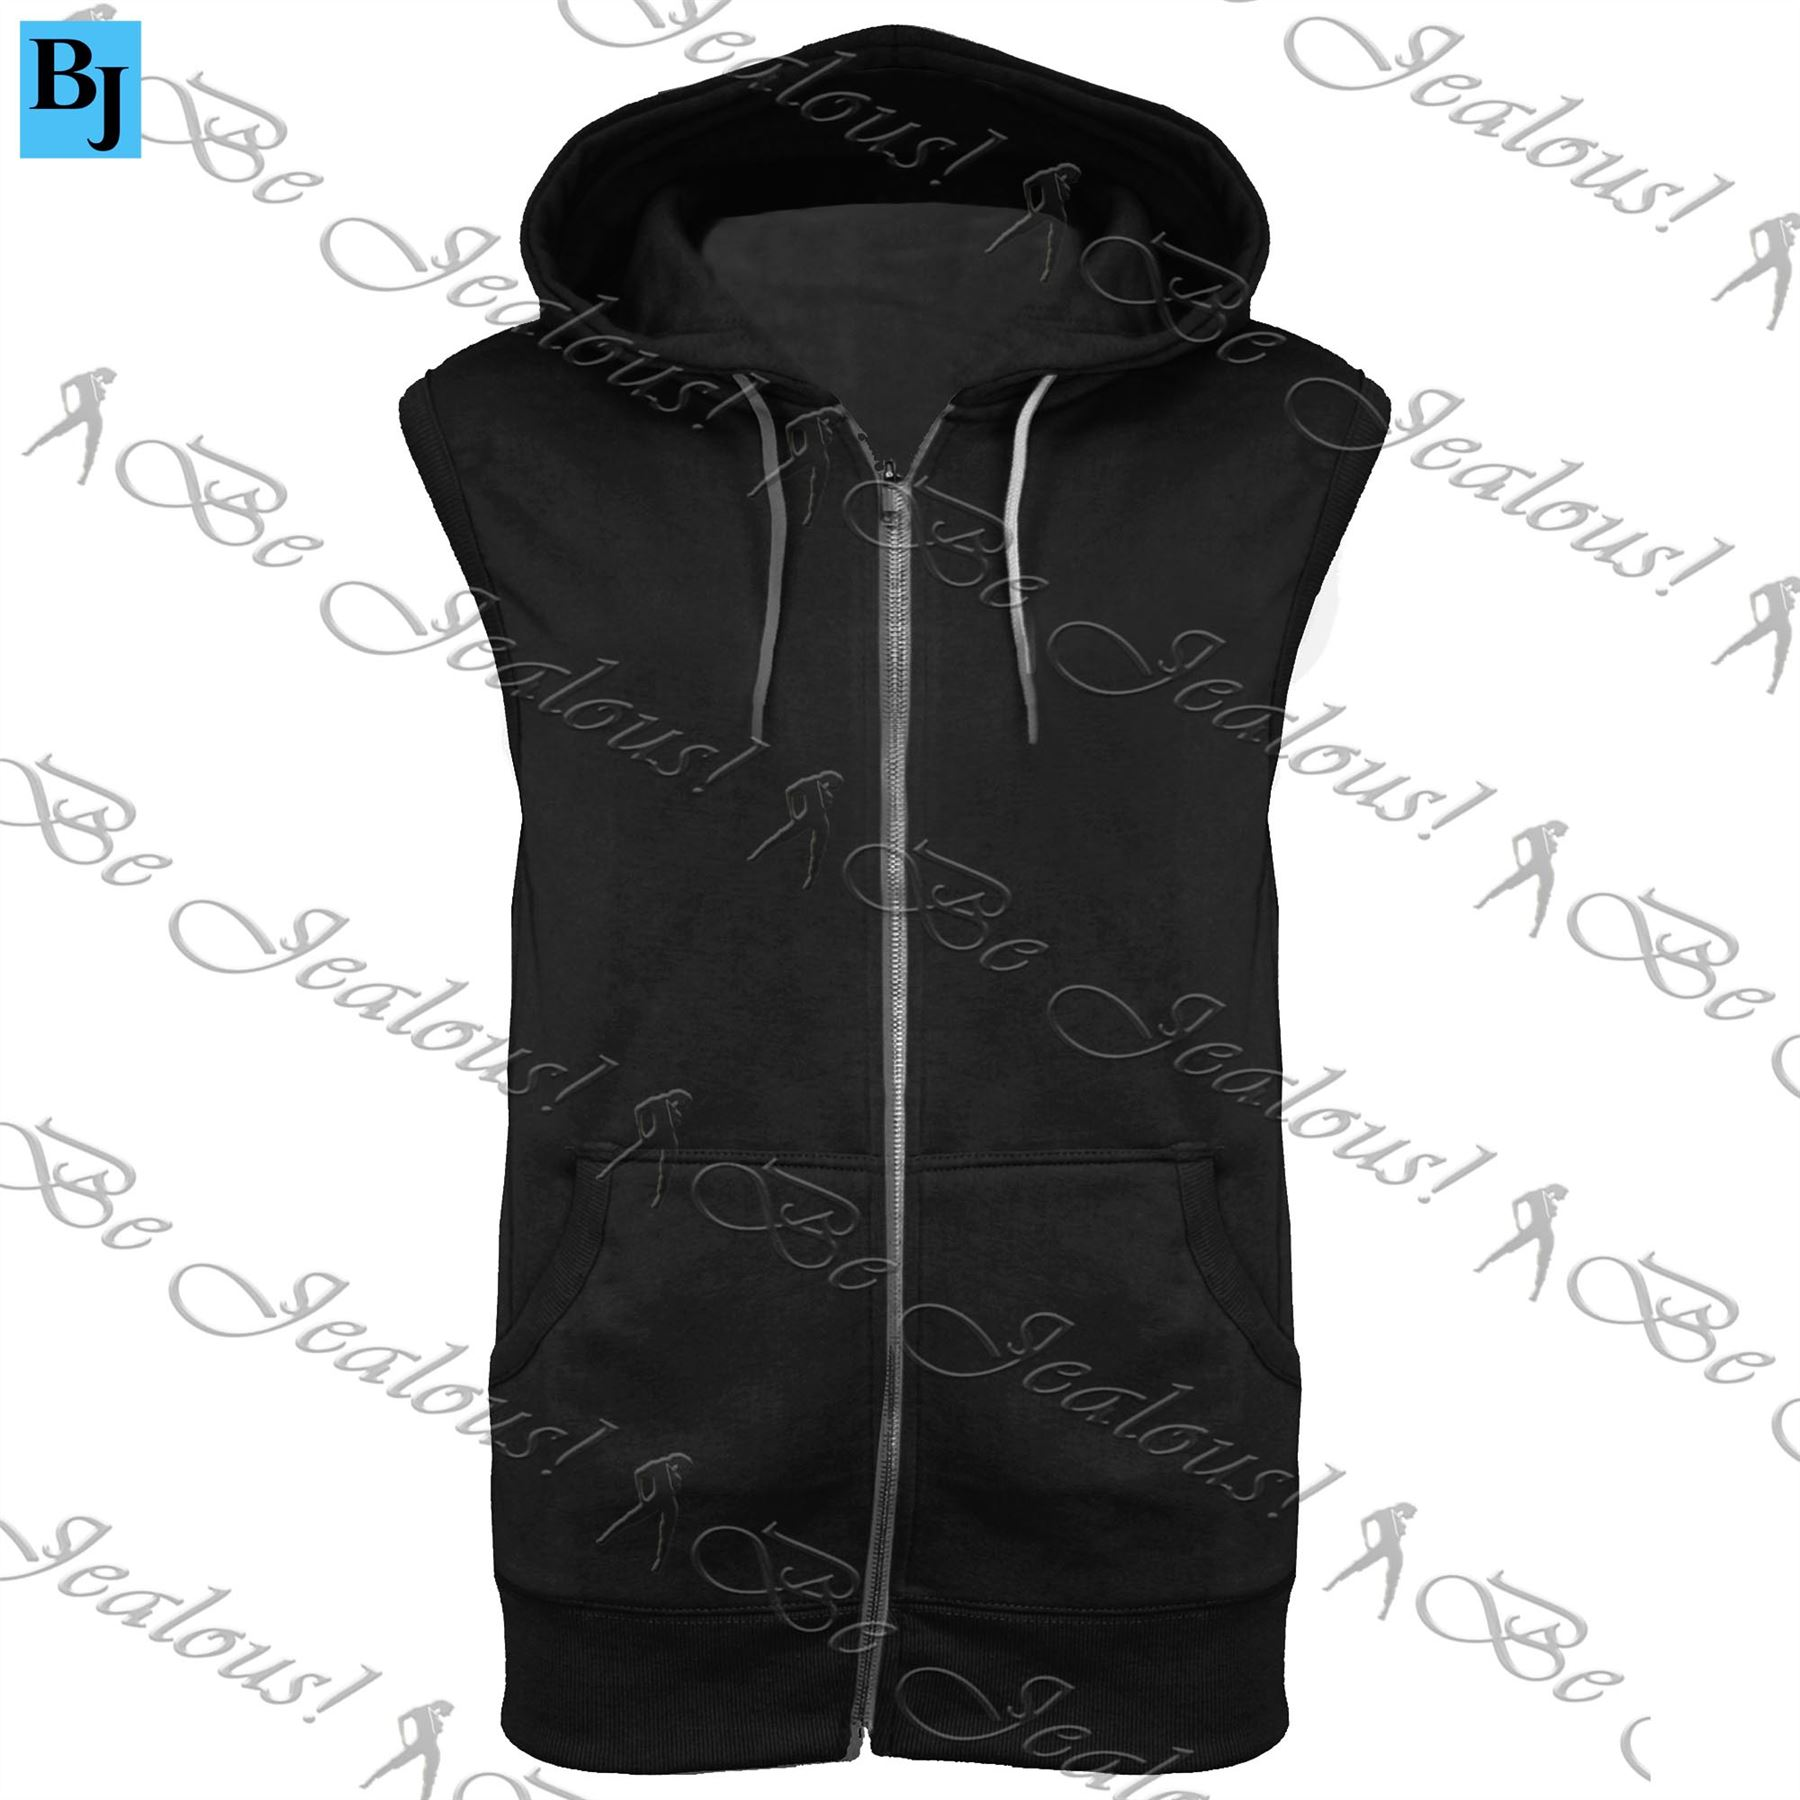 Mens-Sleeveless-Hooded-Hoodie-Casual-Zipper-Sweatshirt-Gilet-Jacket-Jumper-Top